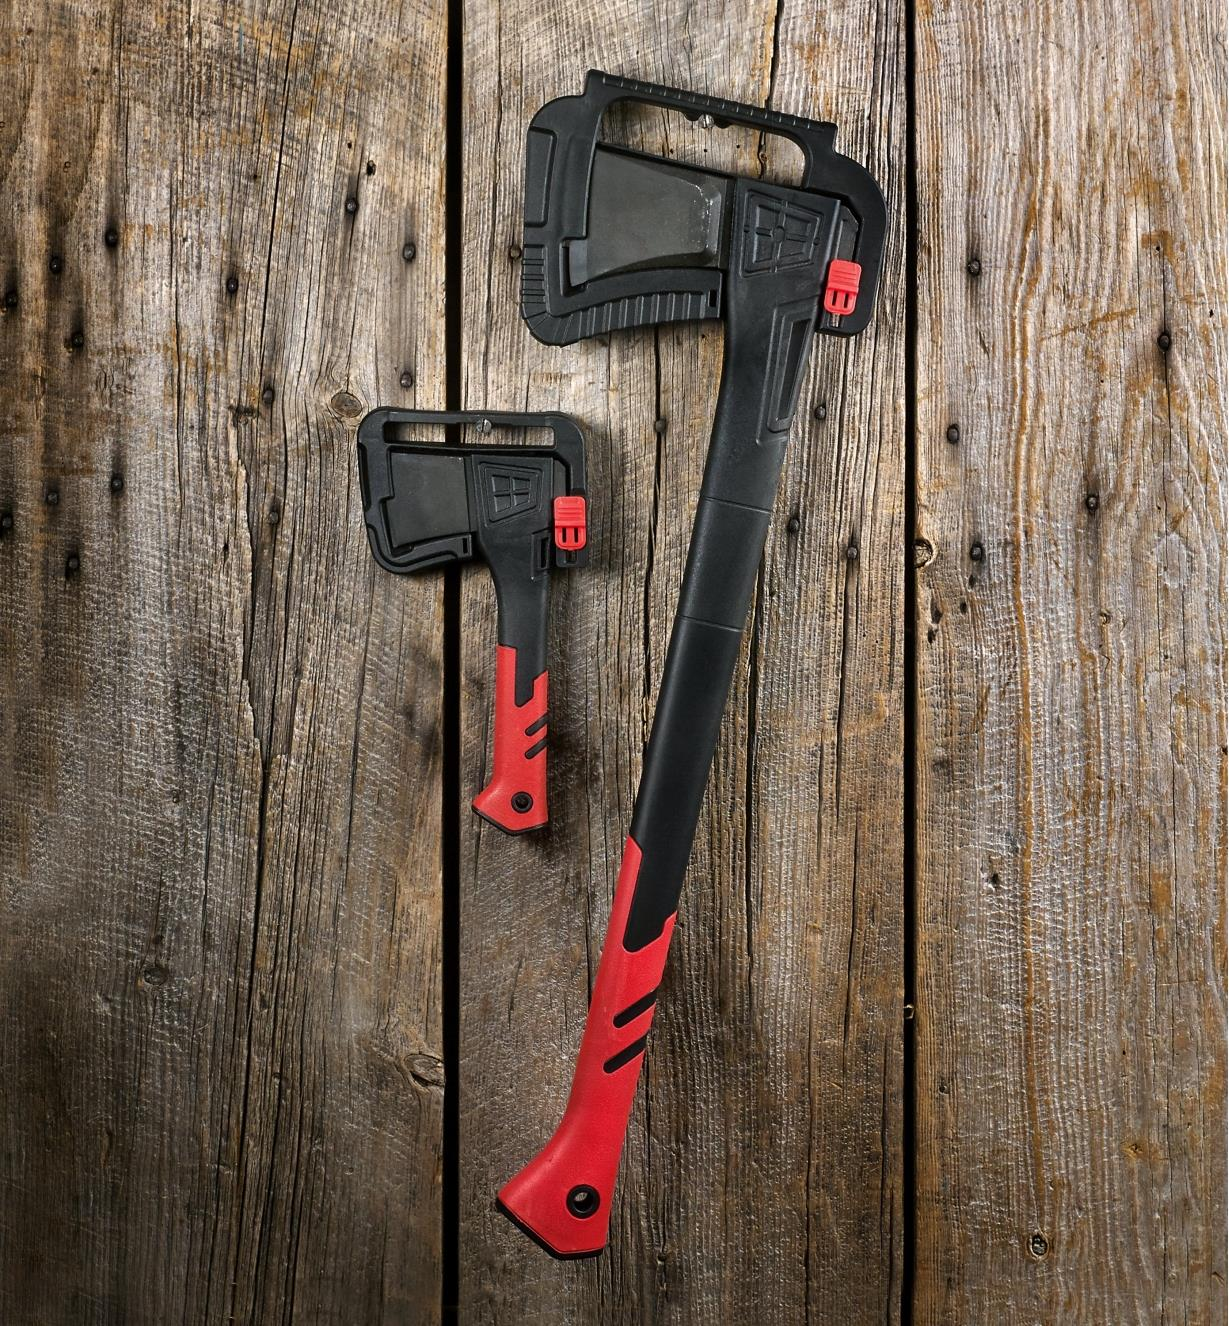 The splitting axe and hatchet held in their plastic storage brackets mounted on the wall of a shed